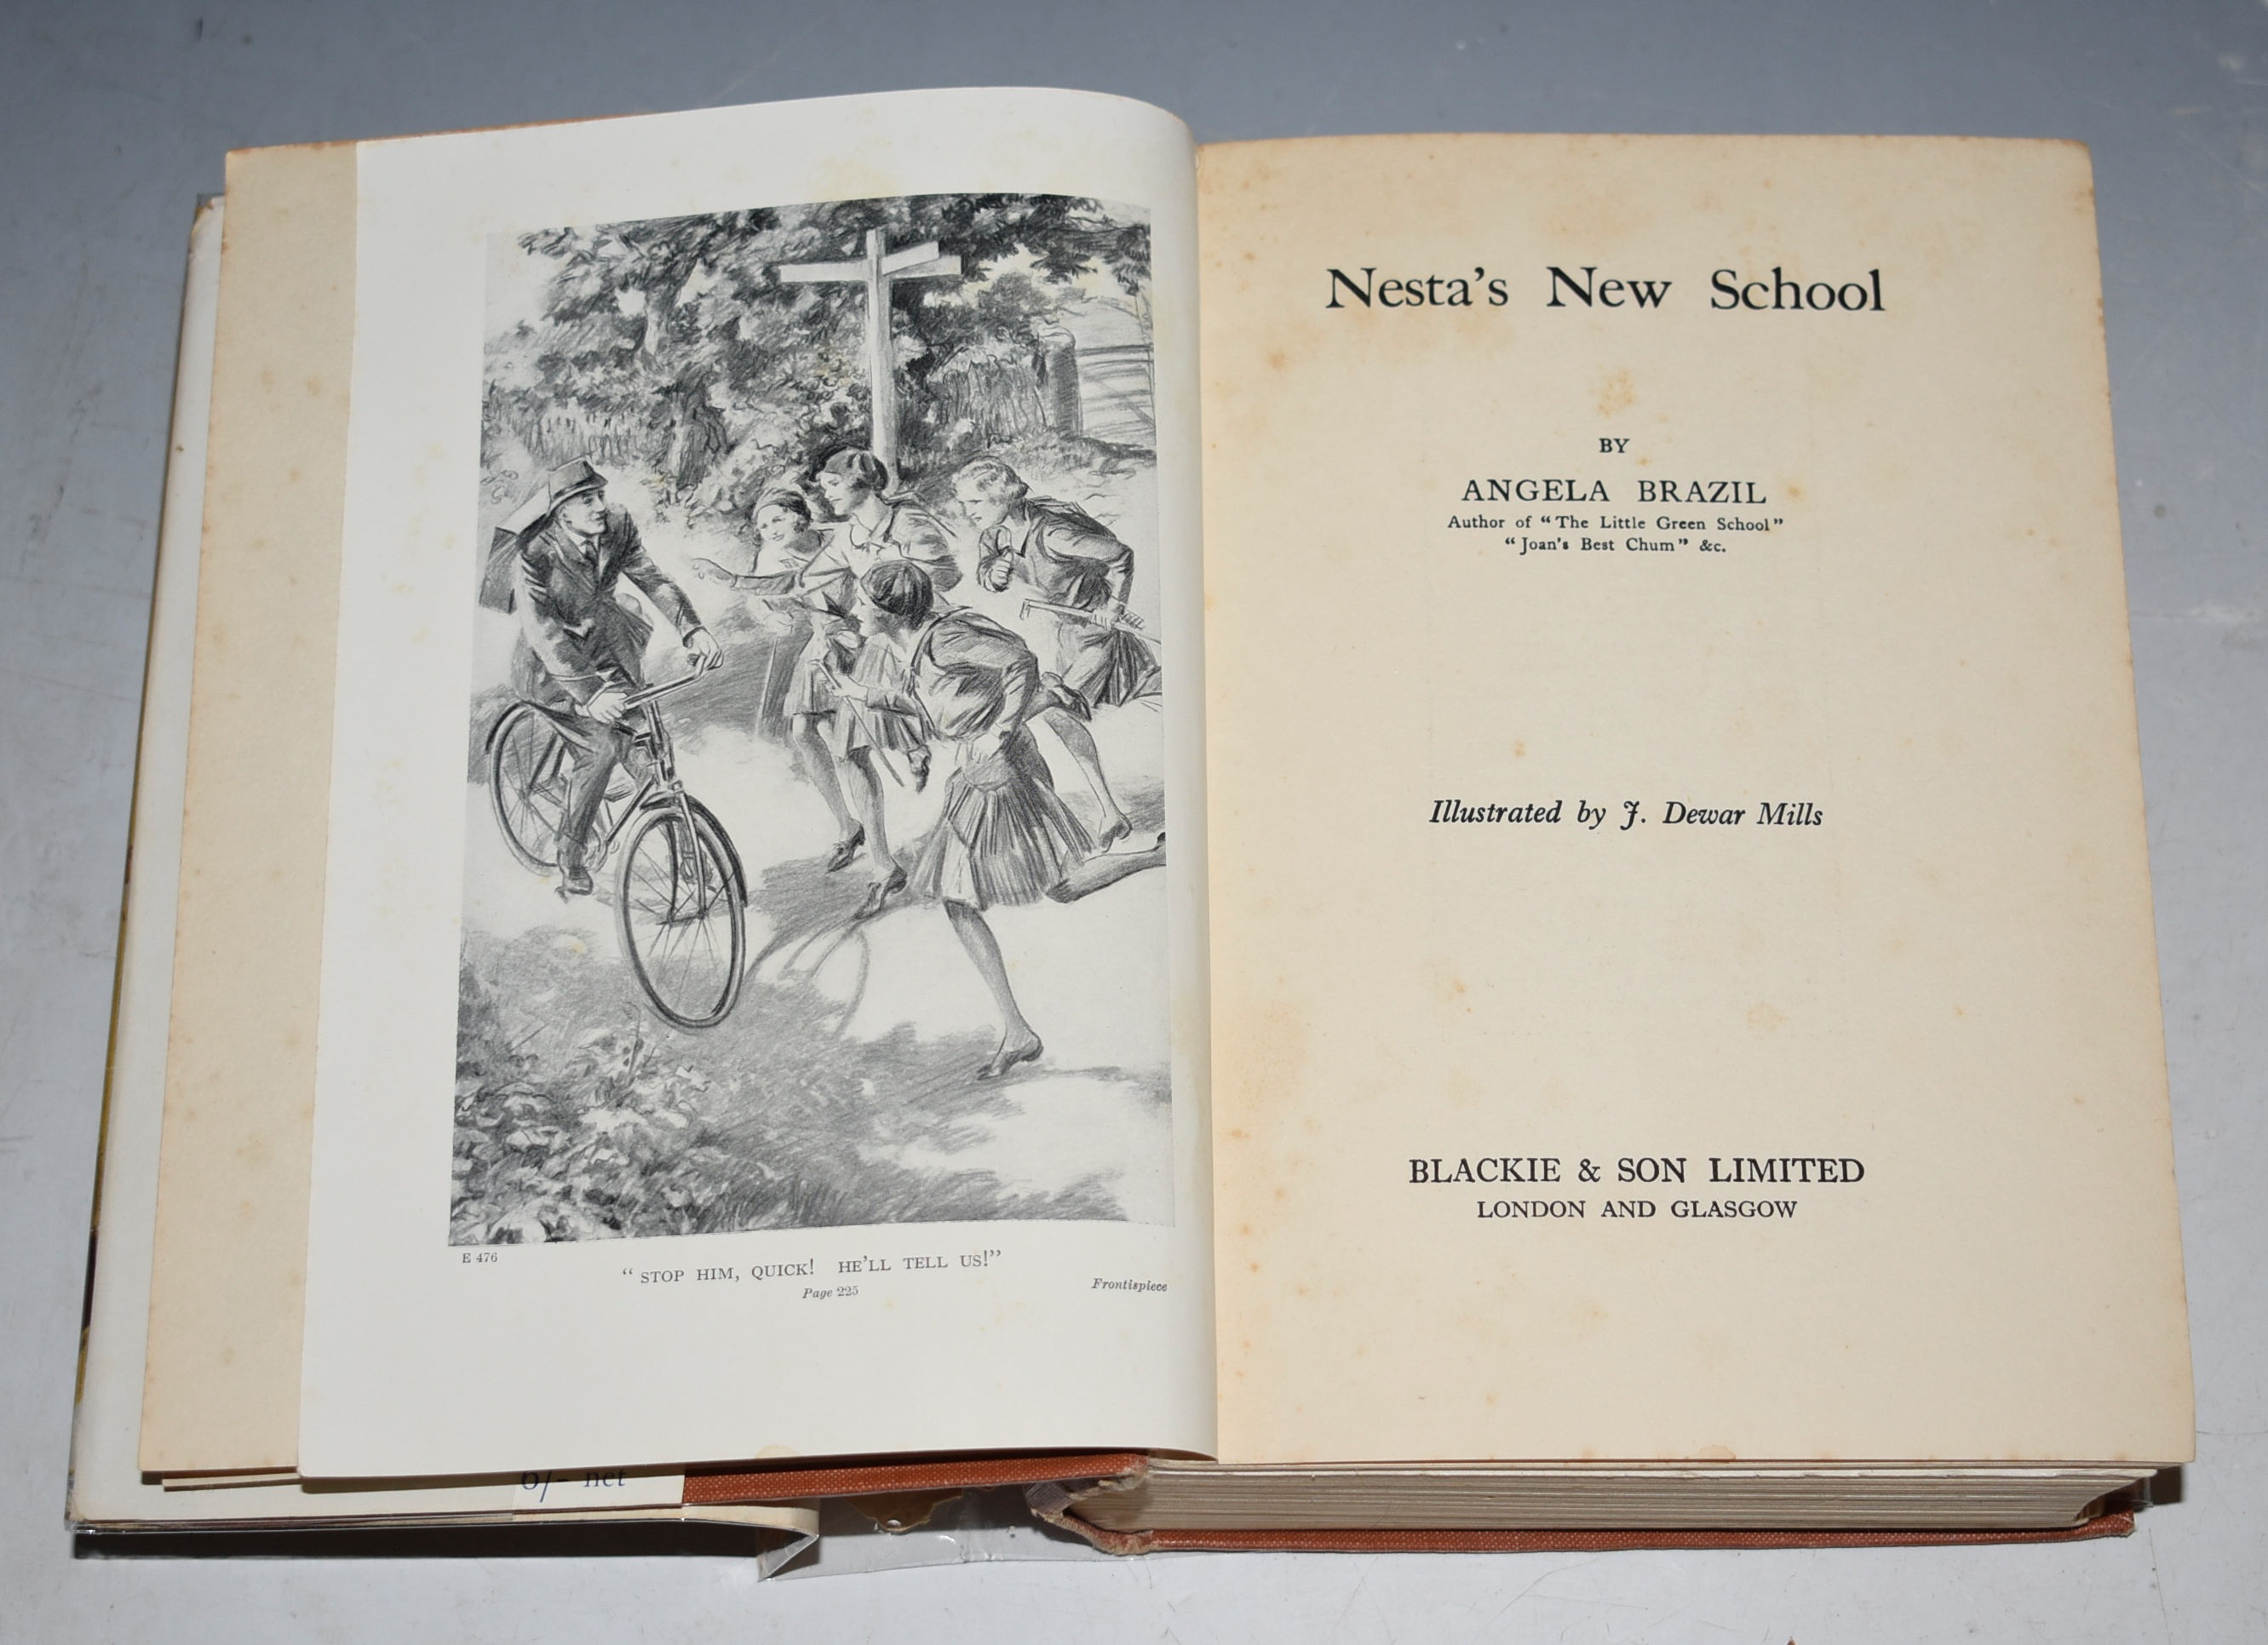 Image for Nesta's New School Illustrated by J. Dewar Mills.